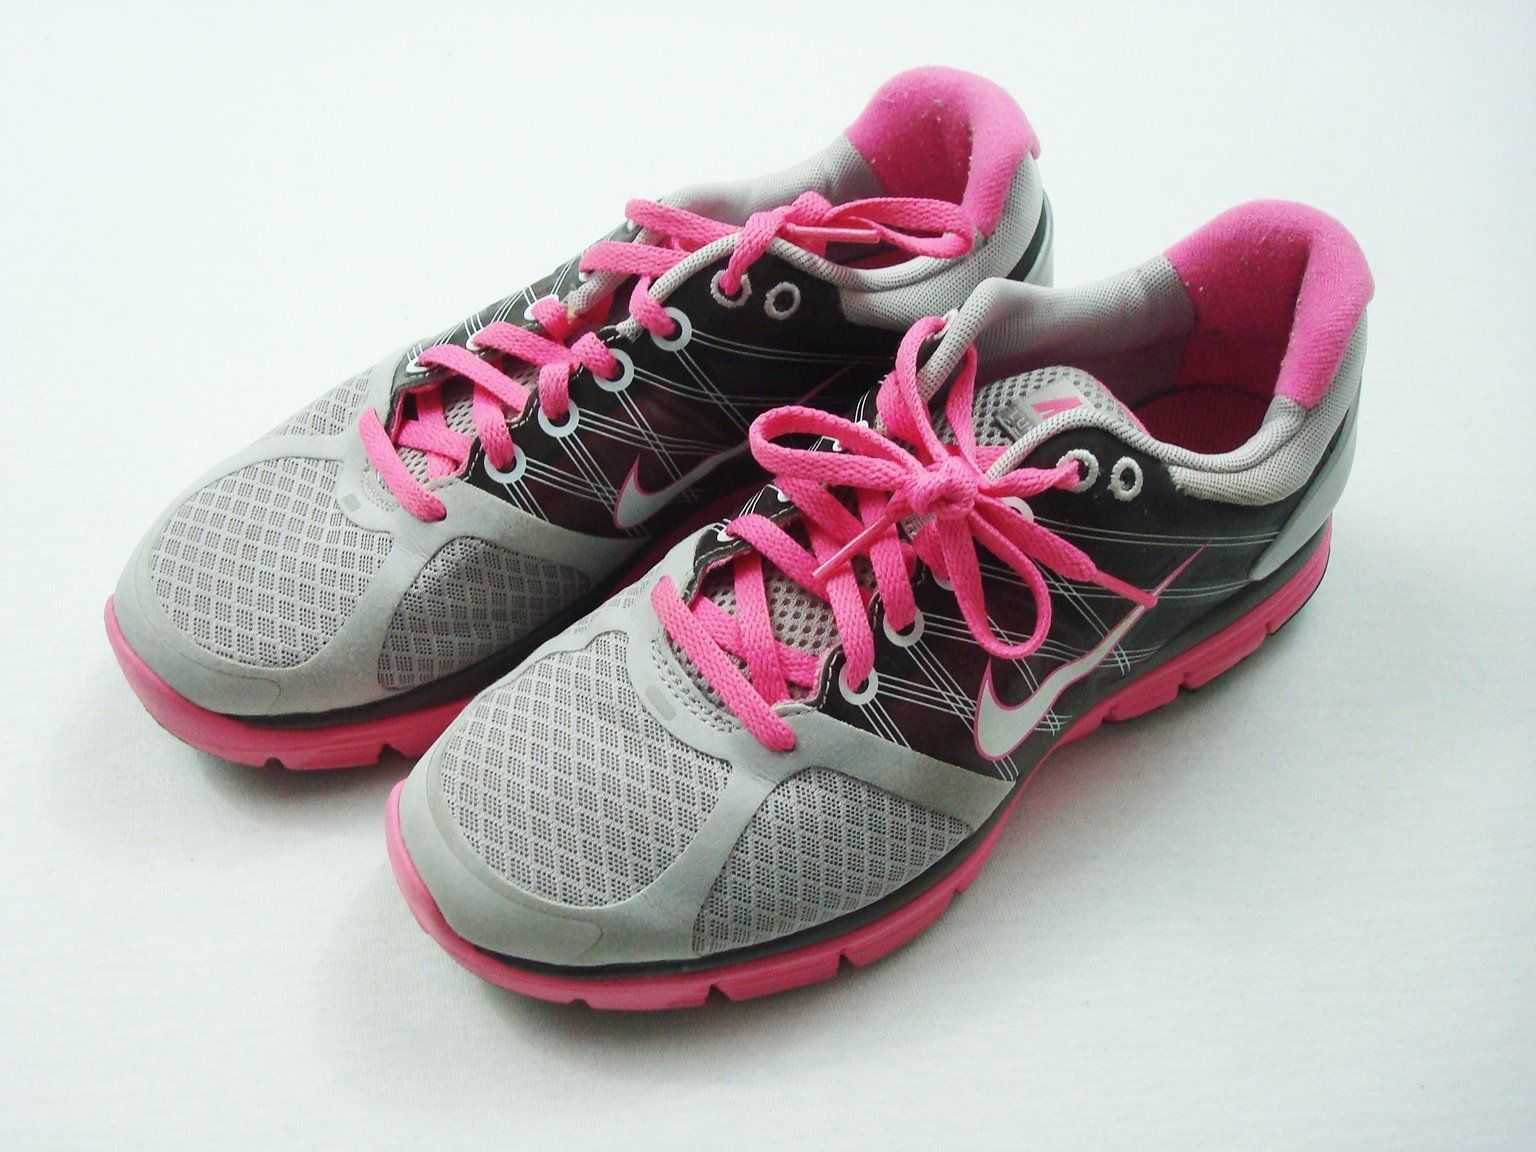 huge discount 51762 82041 Nike Running Shoes Womens 8 OR 6.5 Youth Lunarglide Gray Pink Trim Trainers